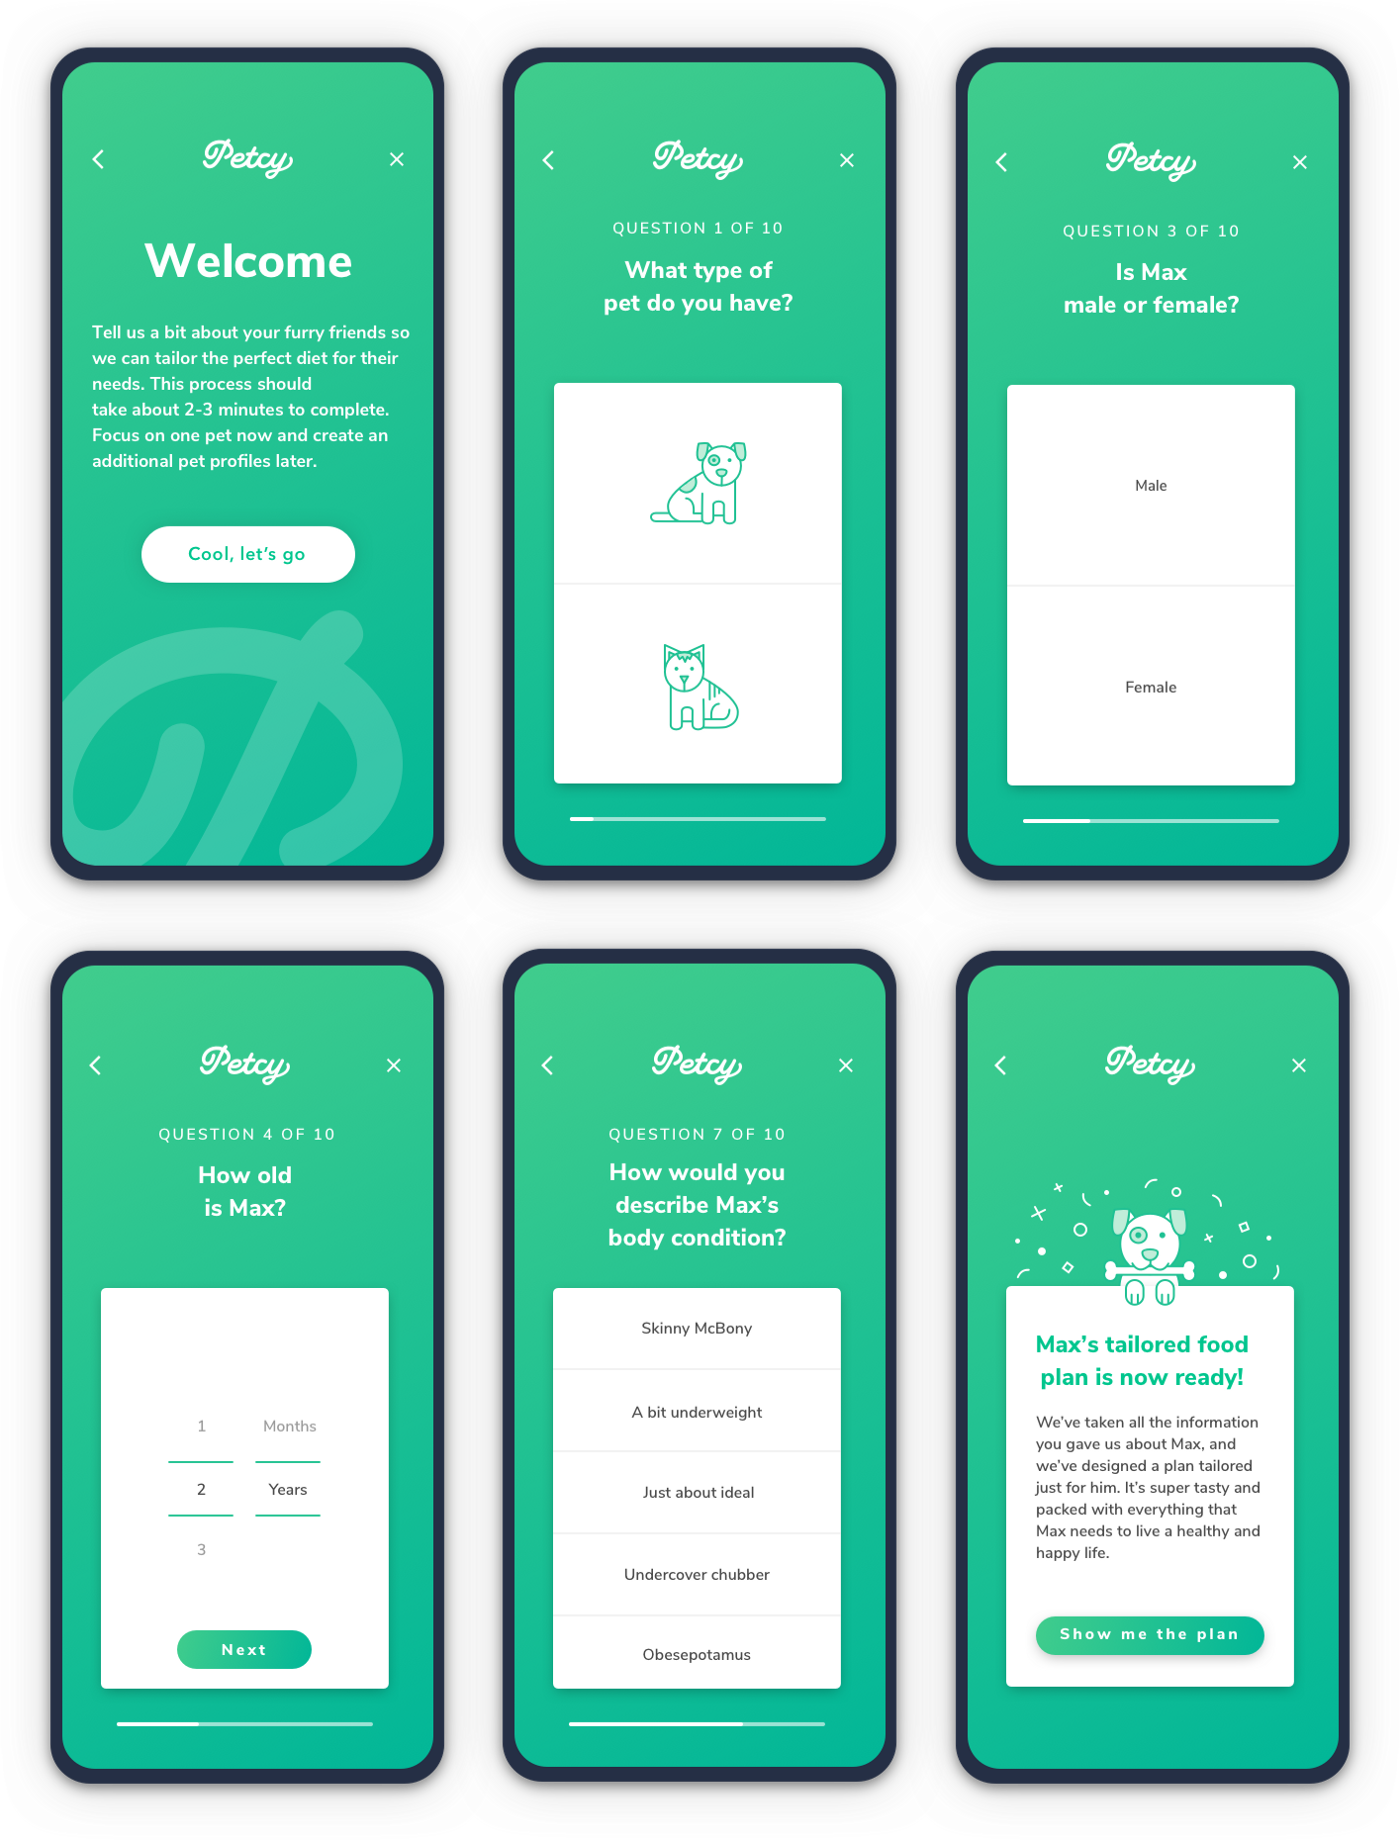 UI/UX case study: a step-by-step guide to the process of designing a